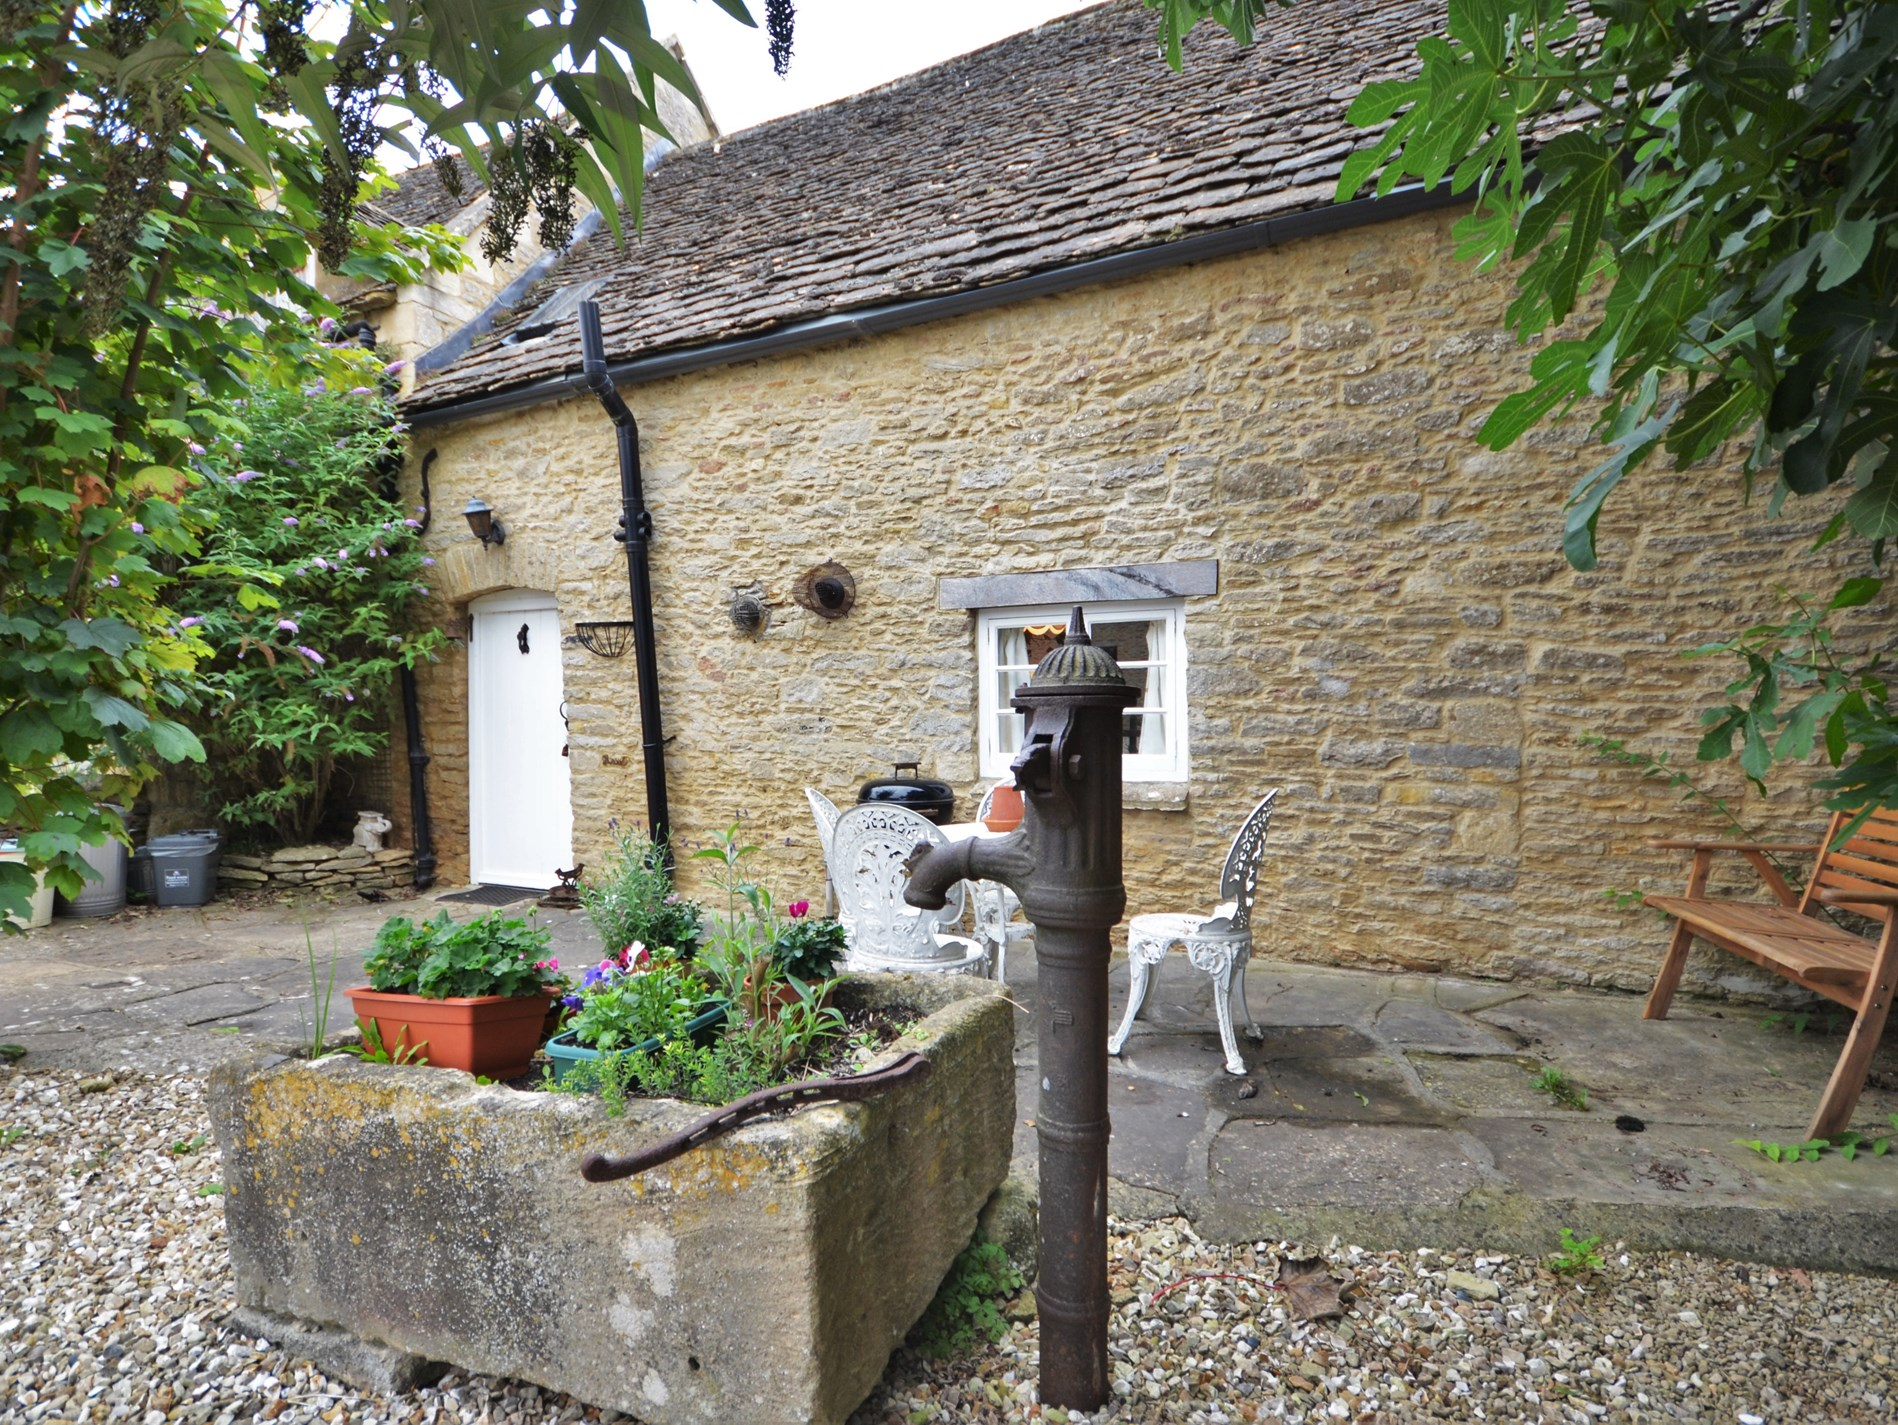 Views towards the property, outside seating area and original water pump